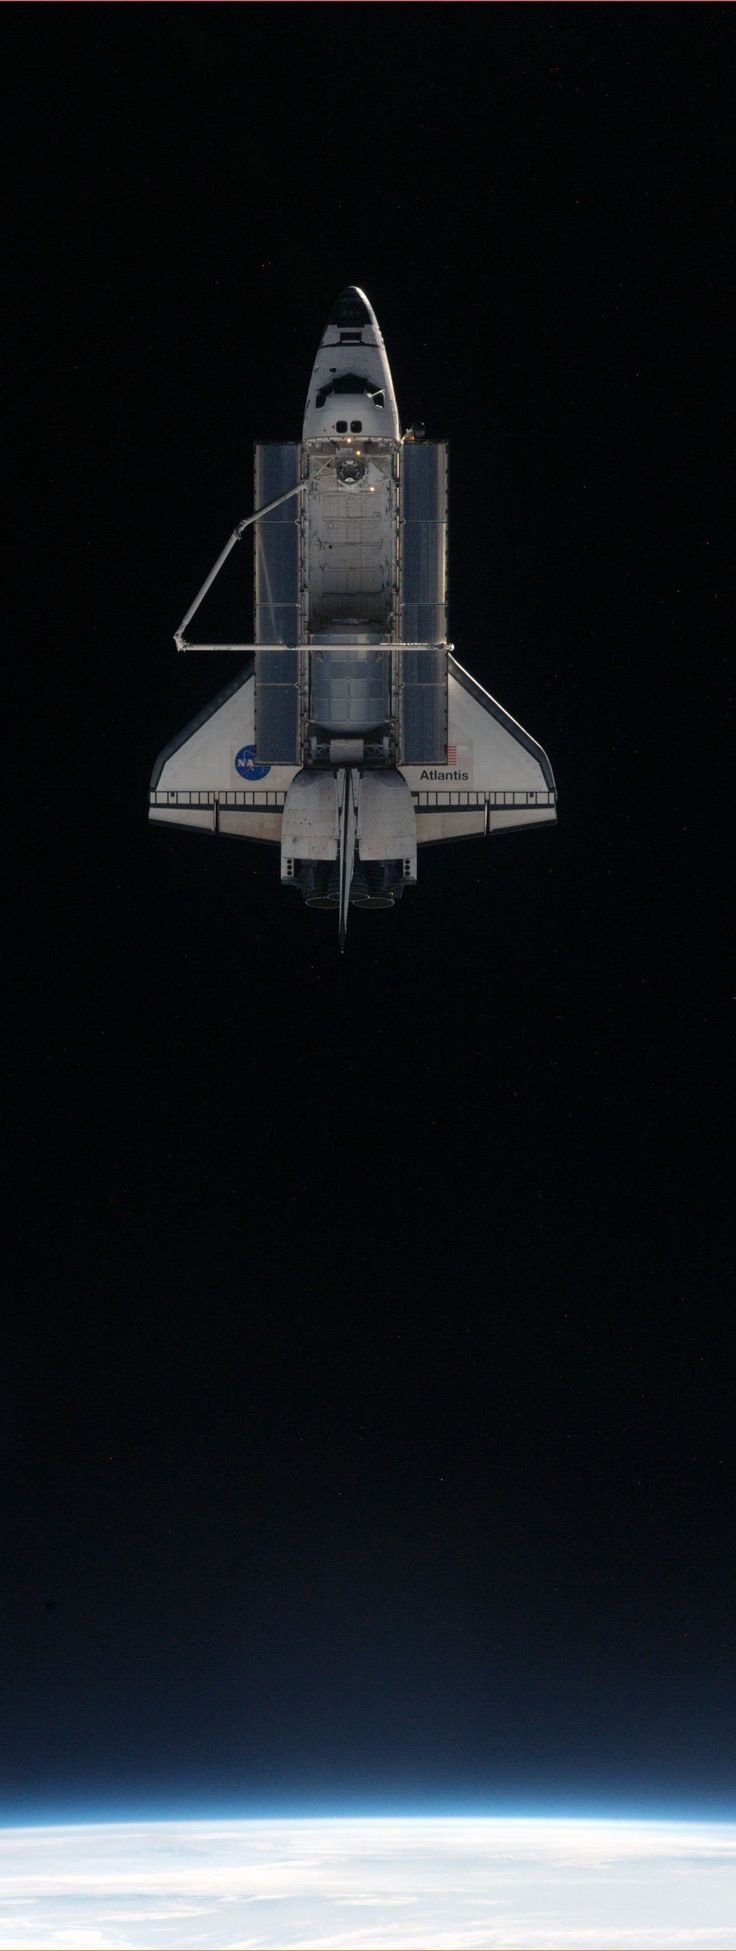 Atlantis and ISS Separate for the Final Time This picture of space shuttle Atlantis was photographed from the International Space Station as the orbiting complex and the shuttle performed their relative separation in the early hours of July 19, 2011.